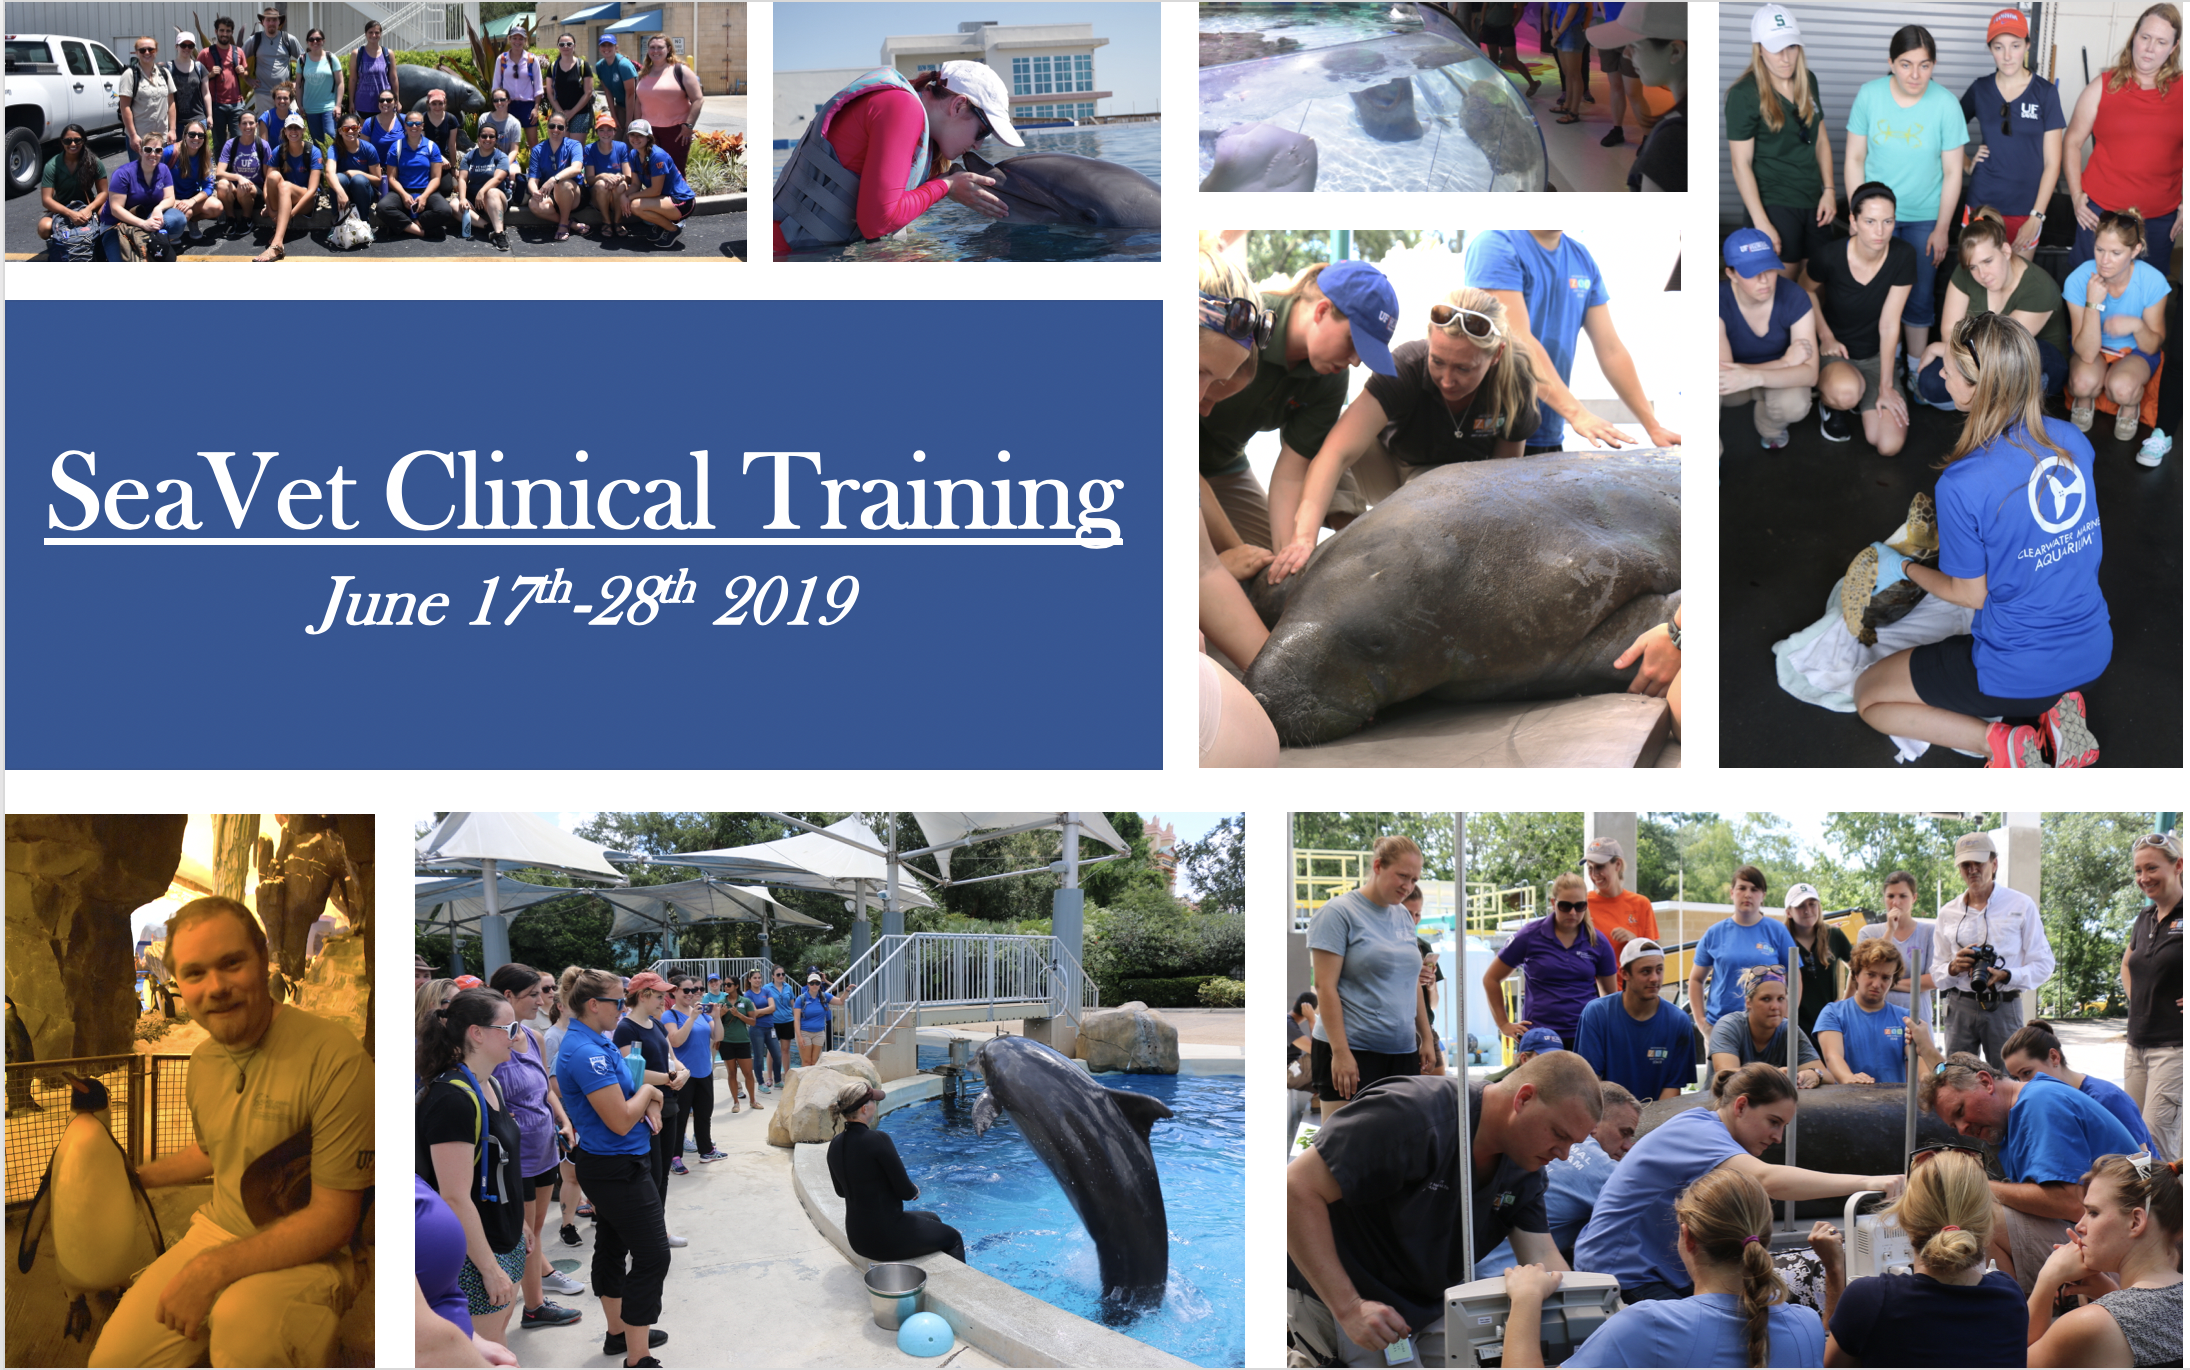 These photos were taken from last years SeaVet course 2018 to depict the various facility field trips offered during the course.